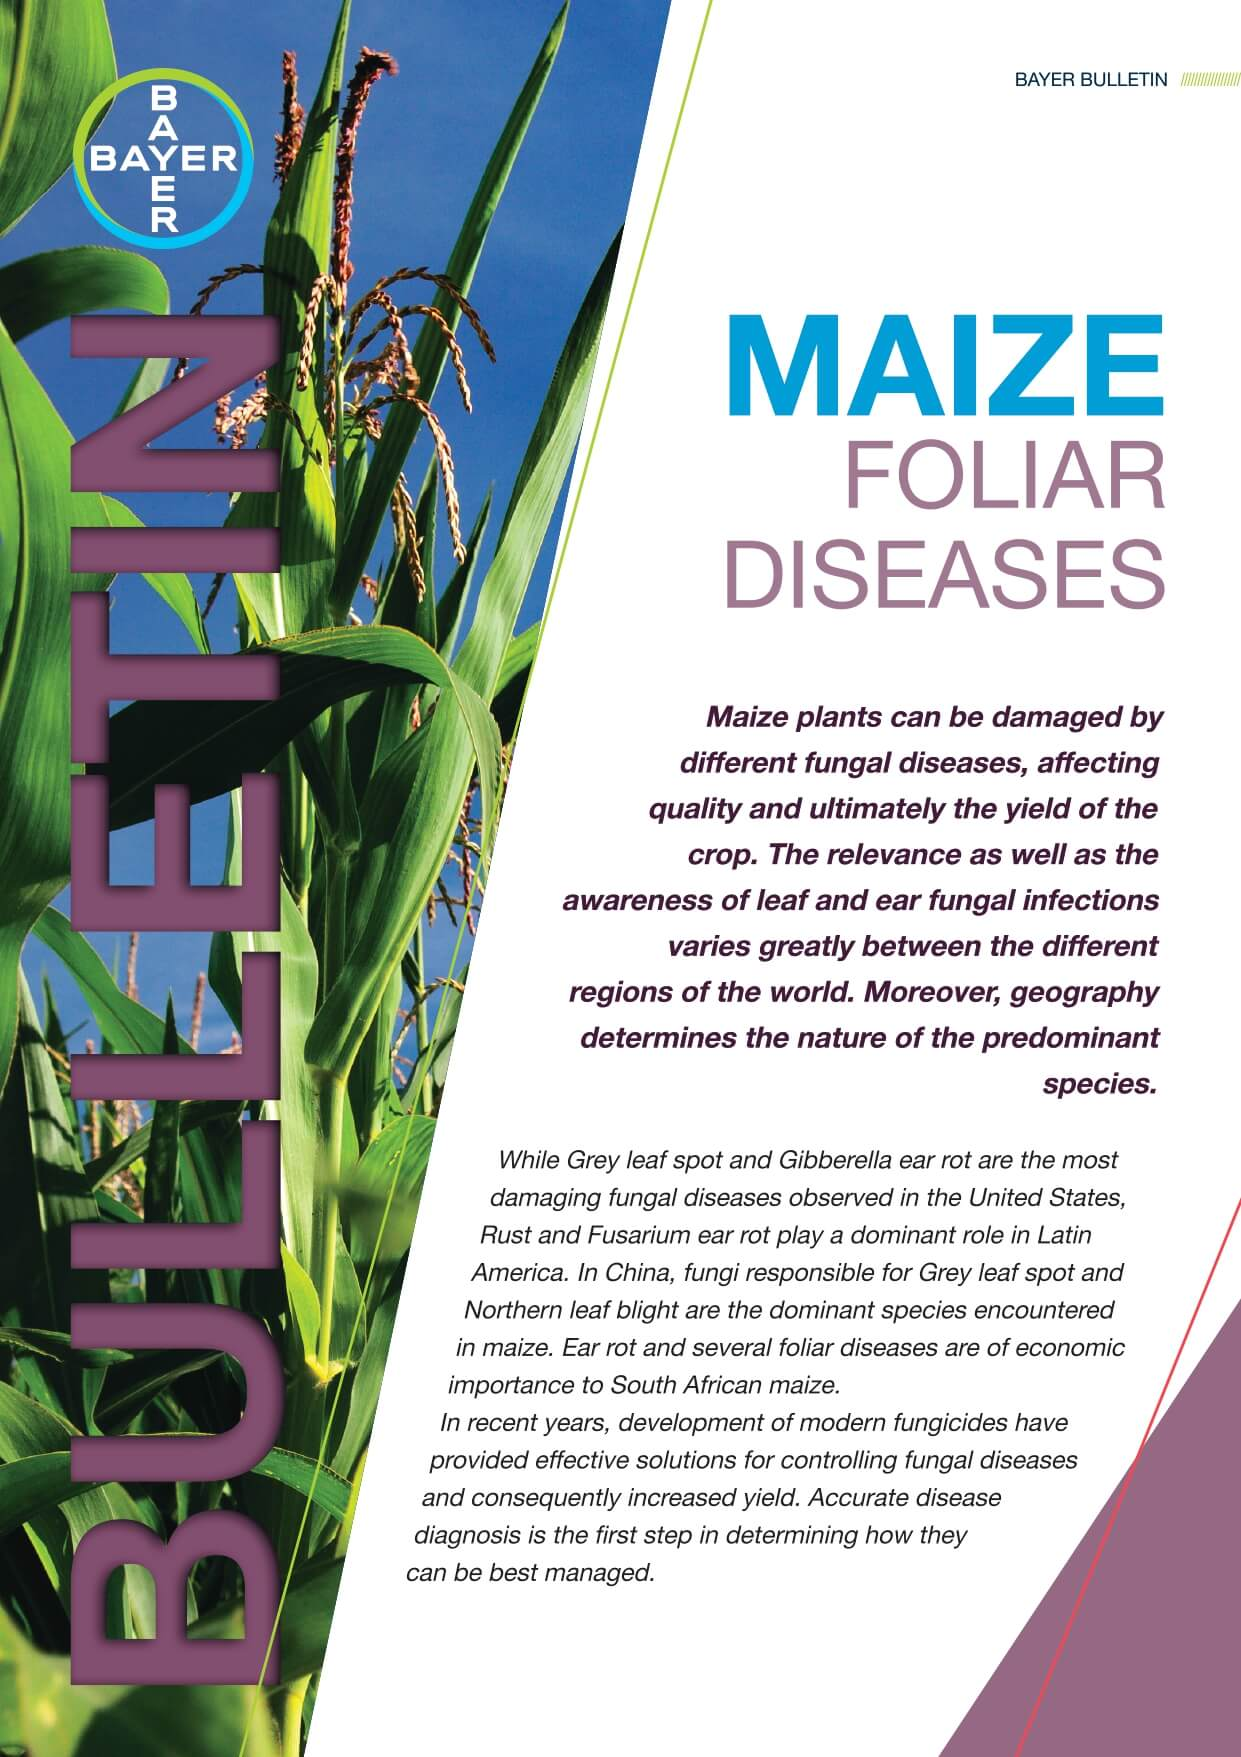 Maize - Foliar Diseases